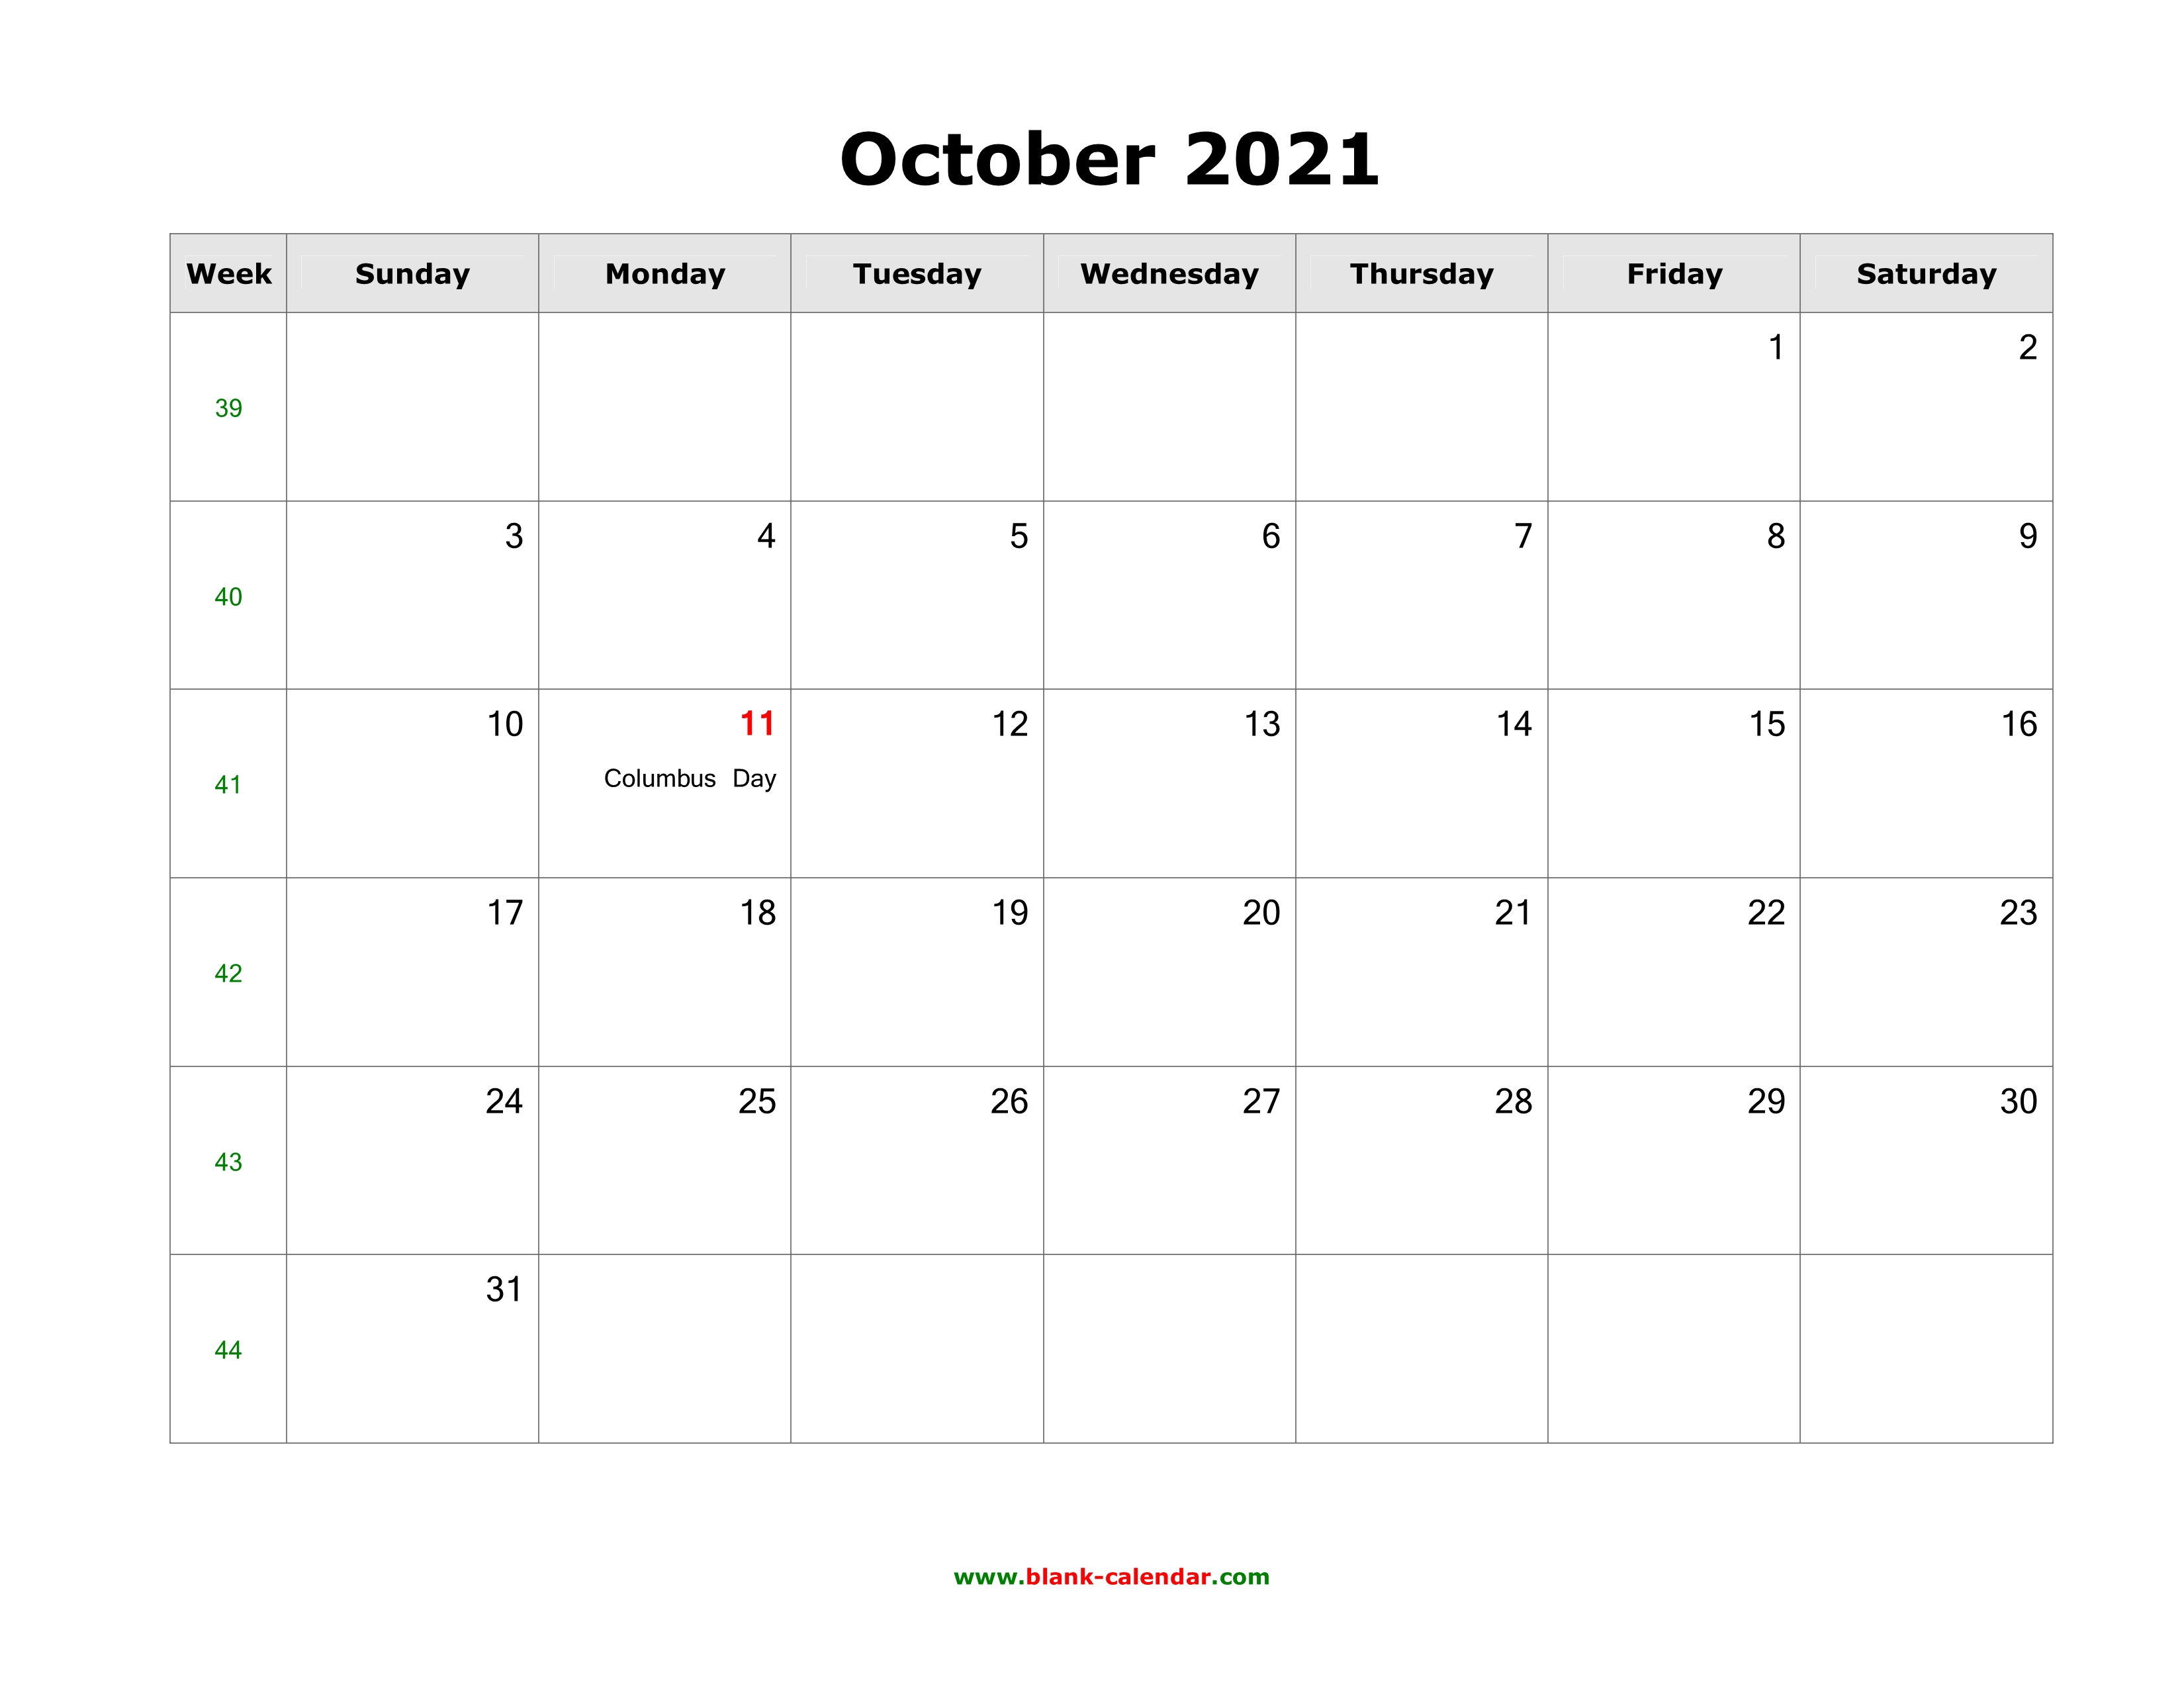 October 2021 Calendar With Holidays Usa Download October 2021 Blank Calendar with US Holidays (horizontal)